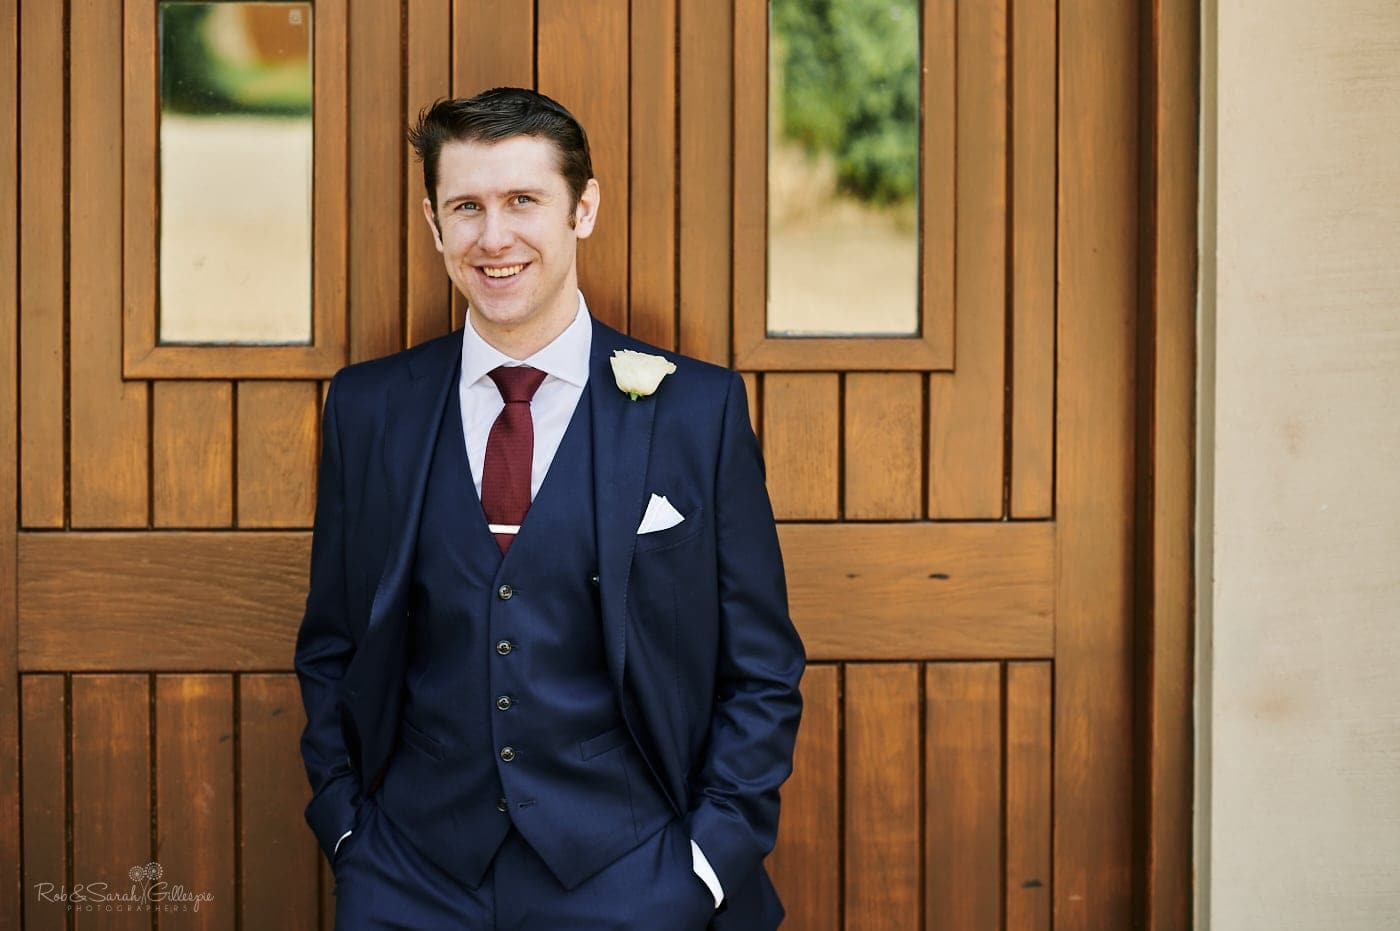 Portrait of groom at Mallory Court wedding